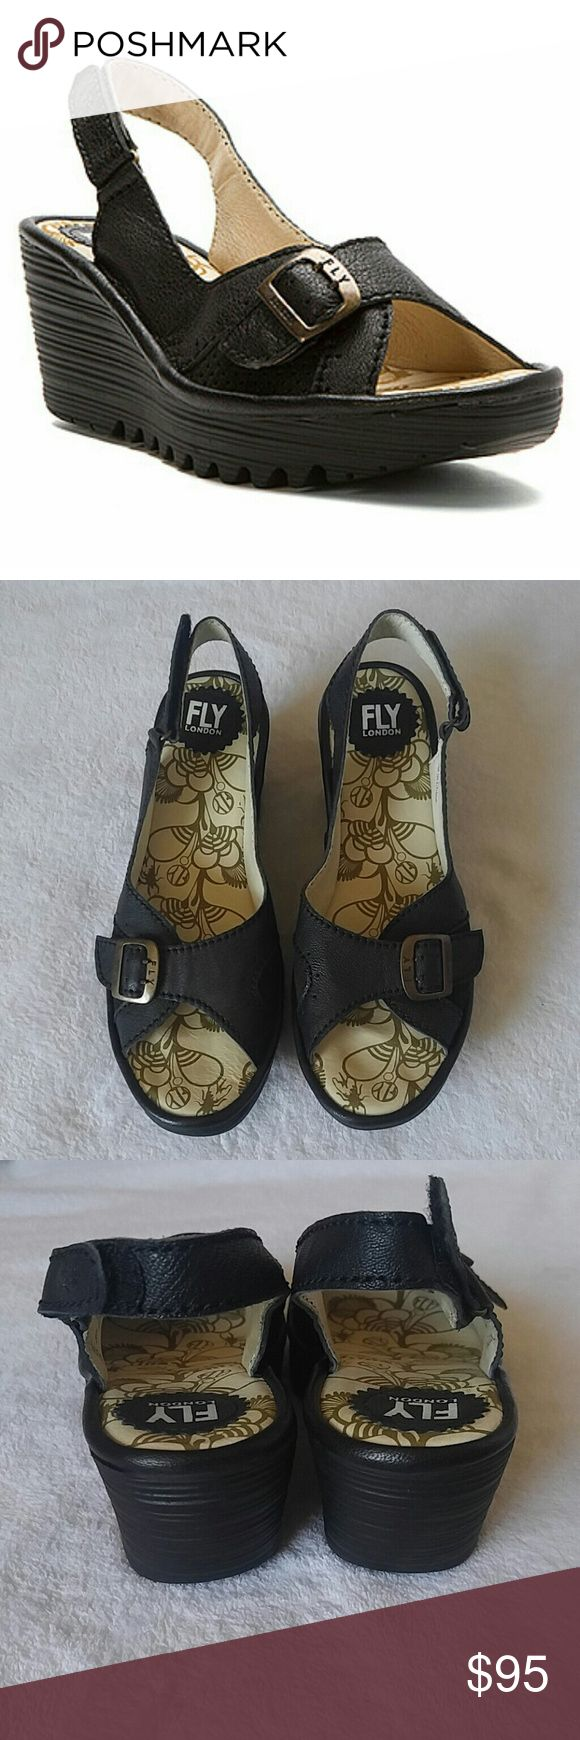 """Fly London Yaga Wedge NWOB Fly London """"Yaga"""" wedge sandals Open toe with buckle clasp Sling back with Velcro strap Black US size 9/9.5 3"""" wedge NWOB never worn Fly London Shoes"""